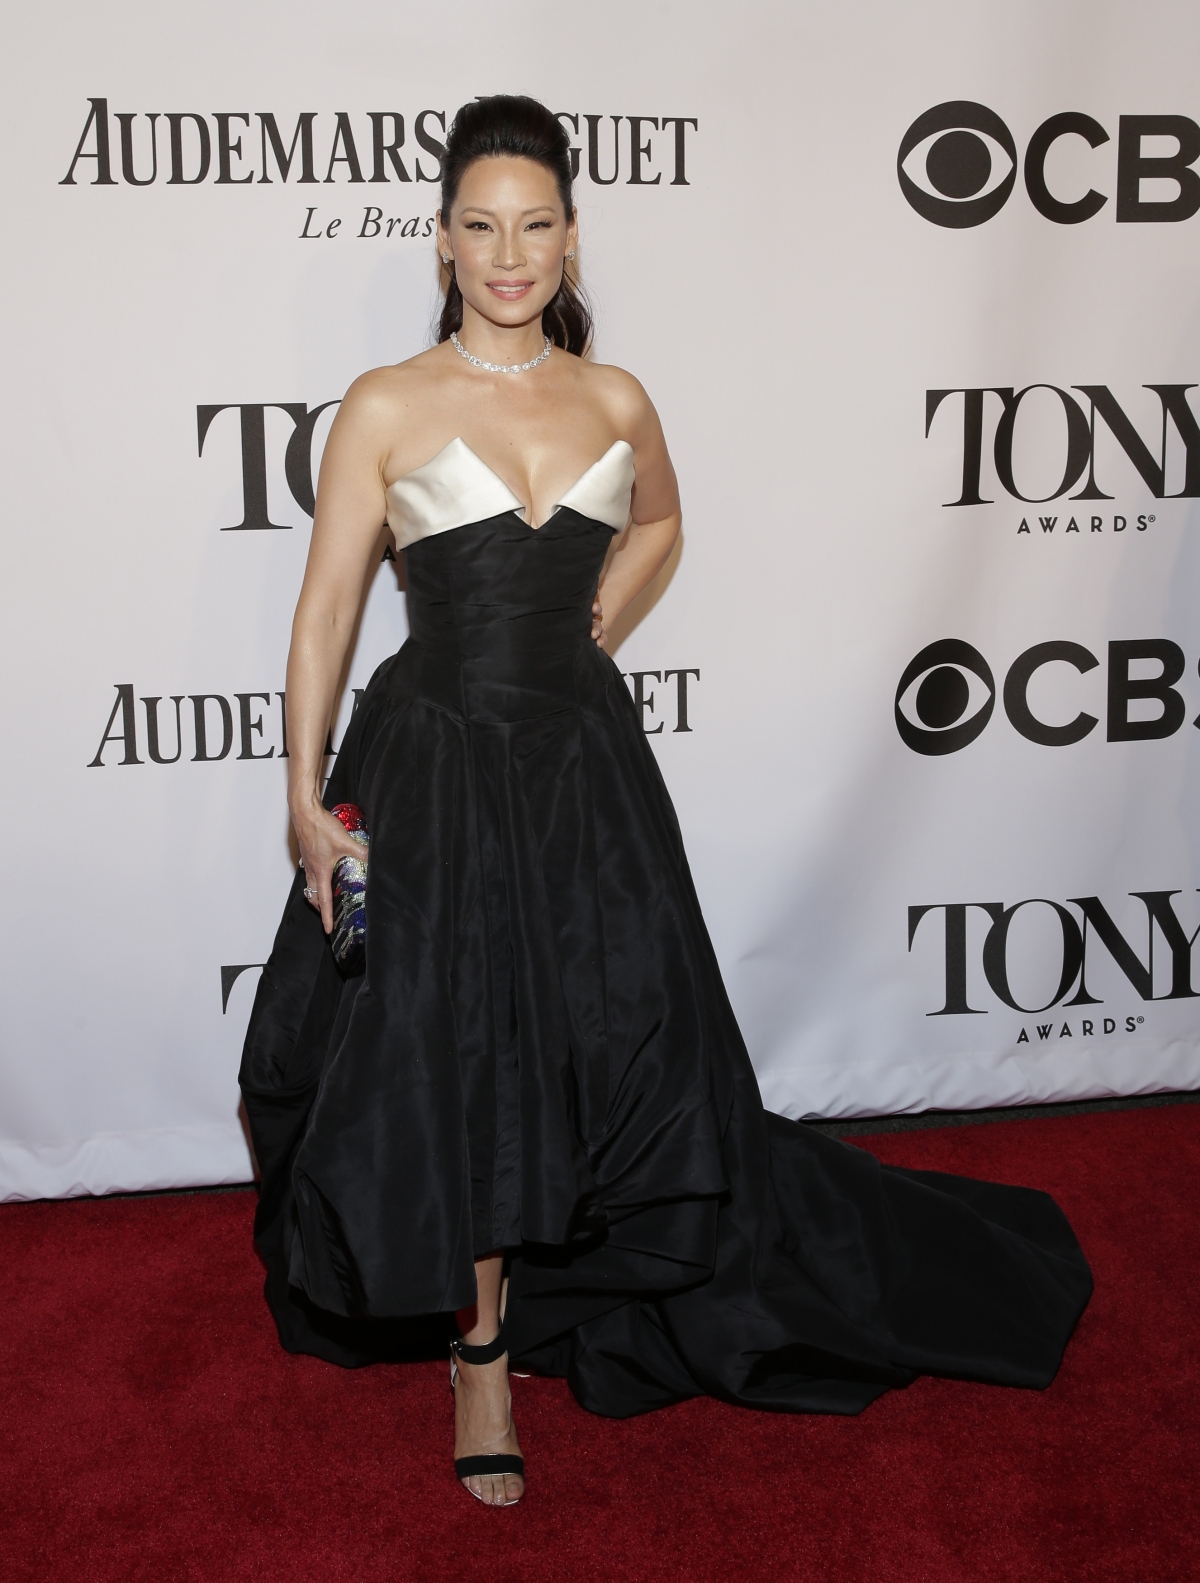 Actress Lucy Liu arrives for the American Theatre Wing's 68th annual Tony Awards at Radio City Music Hall in New York, June 8, 2014.